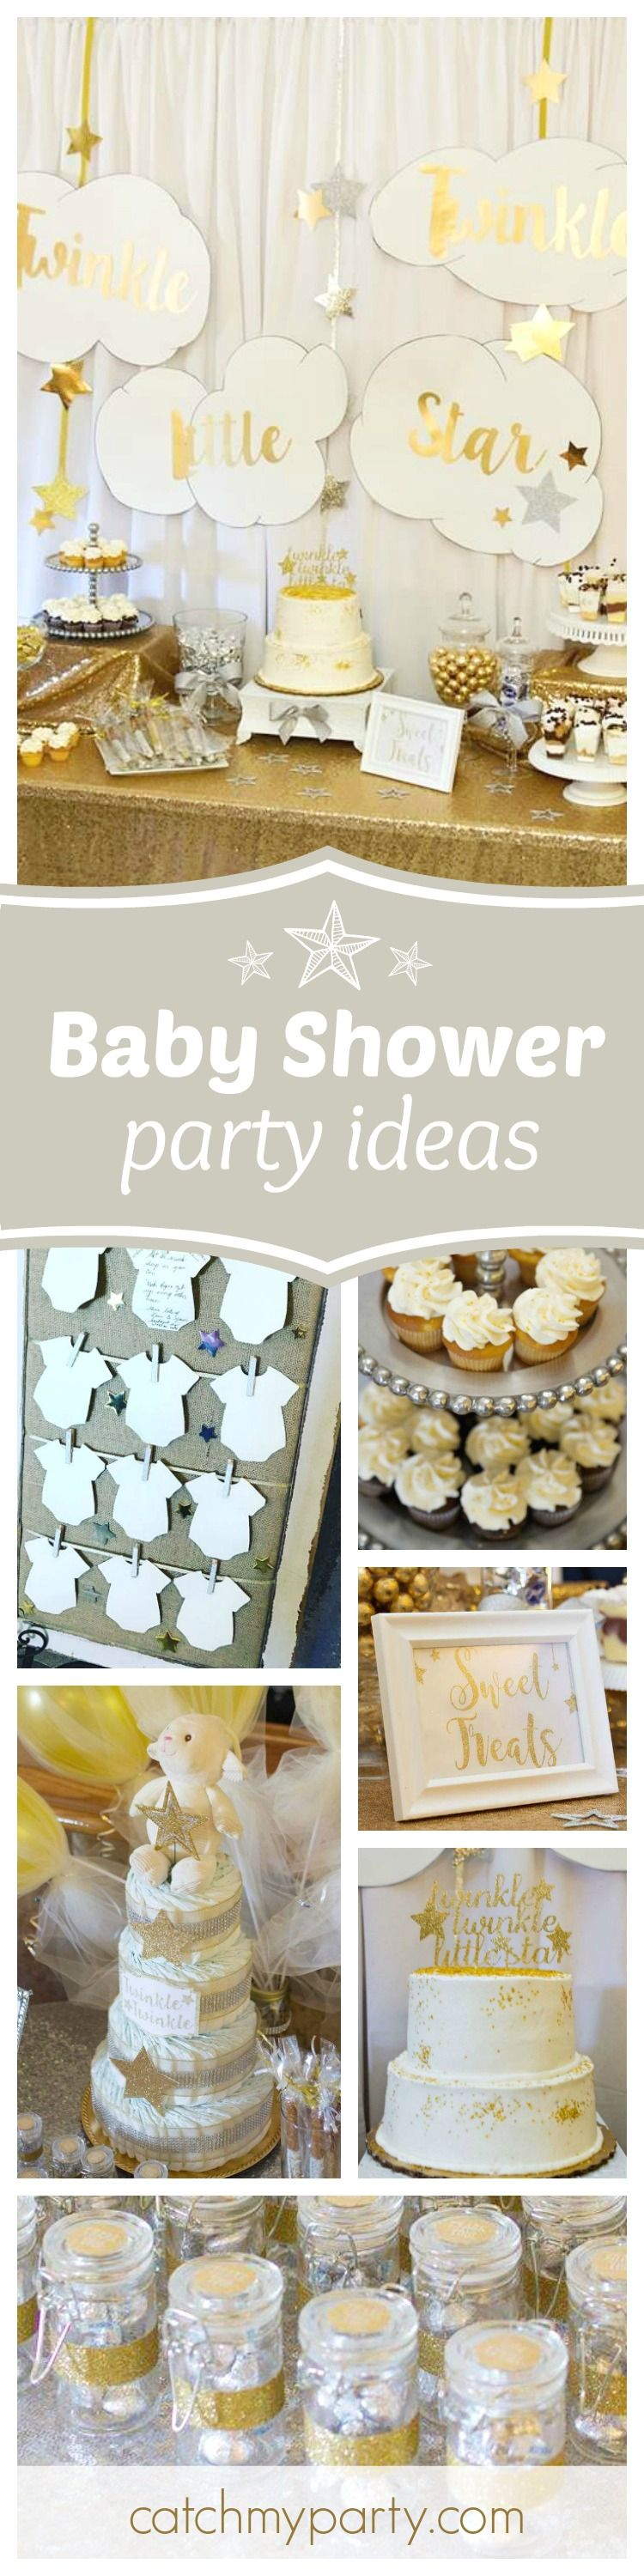 Check Out This Cute Twinkle Twinkle Little Star Baby Shower. The Cake Is  Gorgeous!